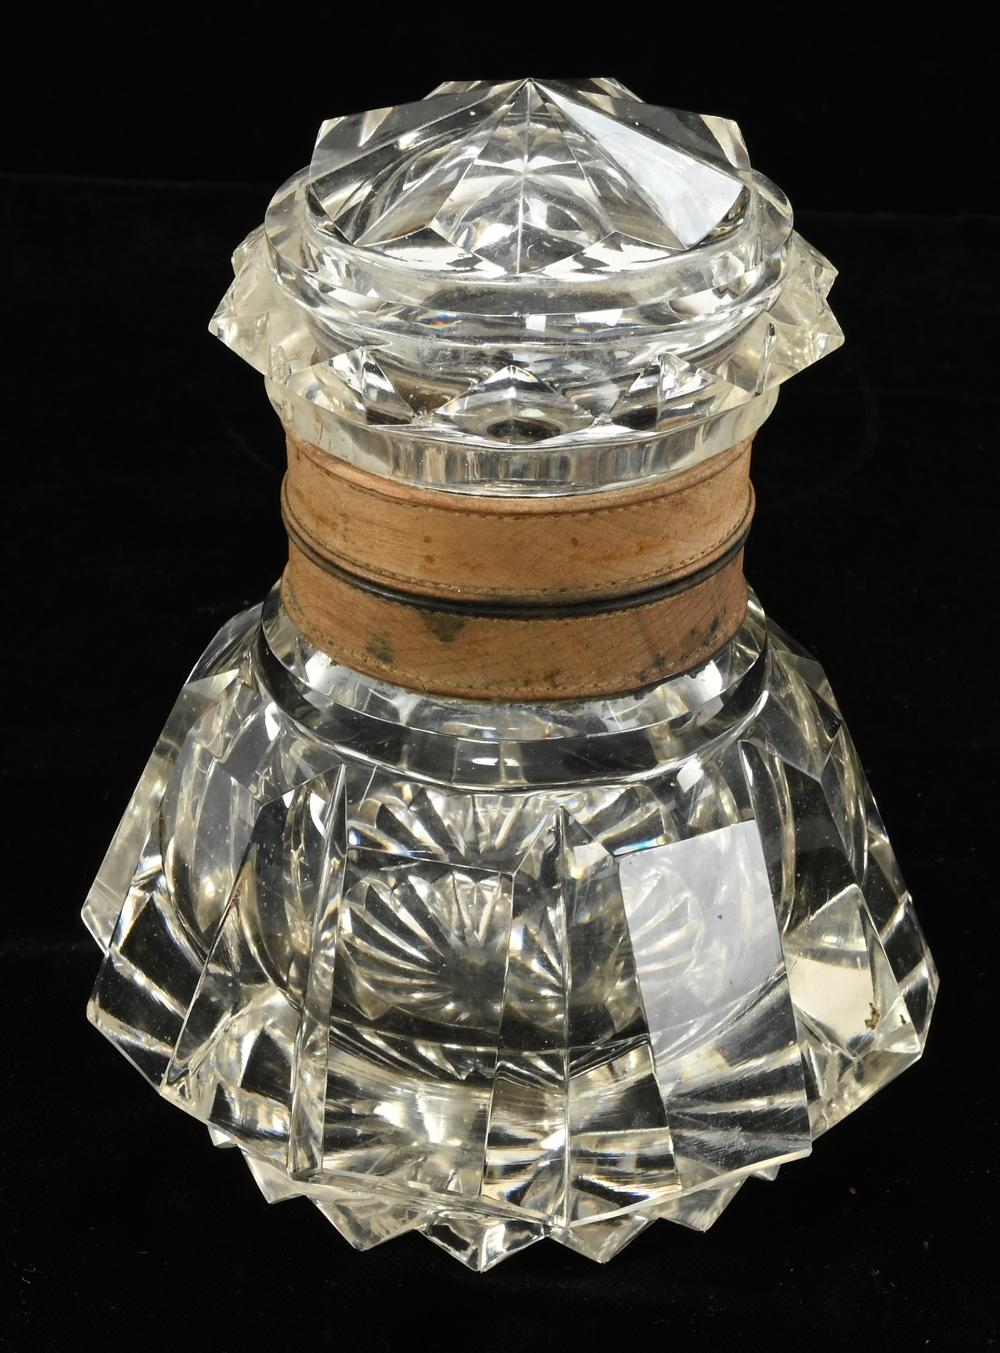 Antique Large Cut Crystal Glass Inkwell